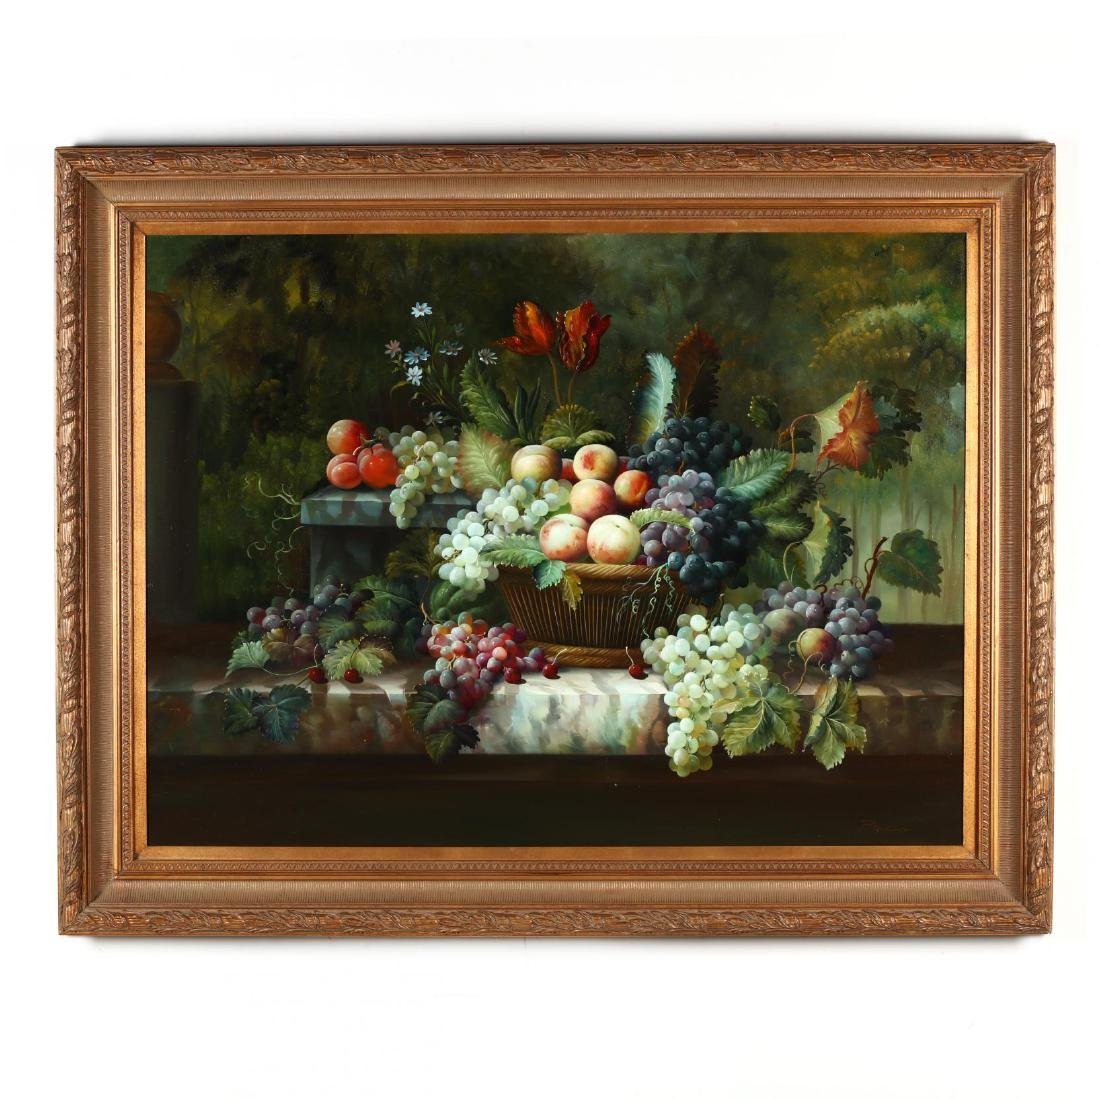 A Large Decorative Contemporary Still Life Painting